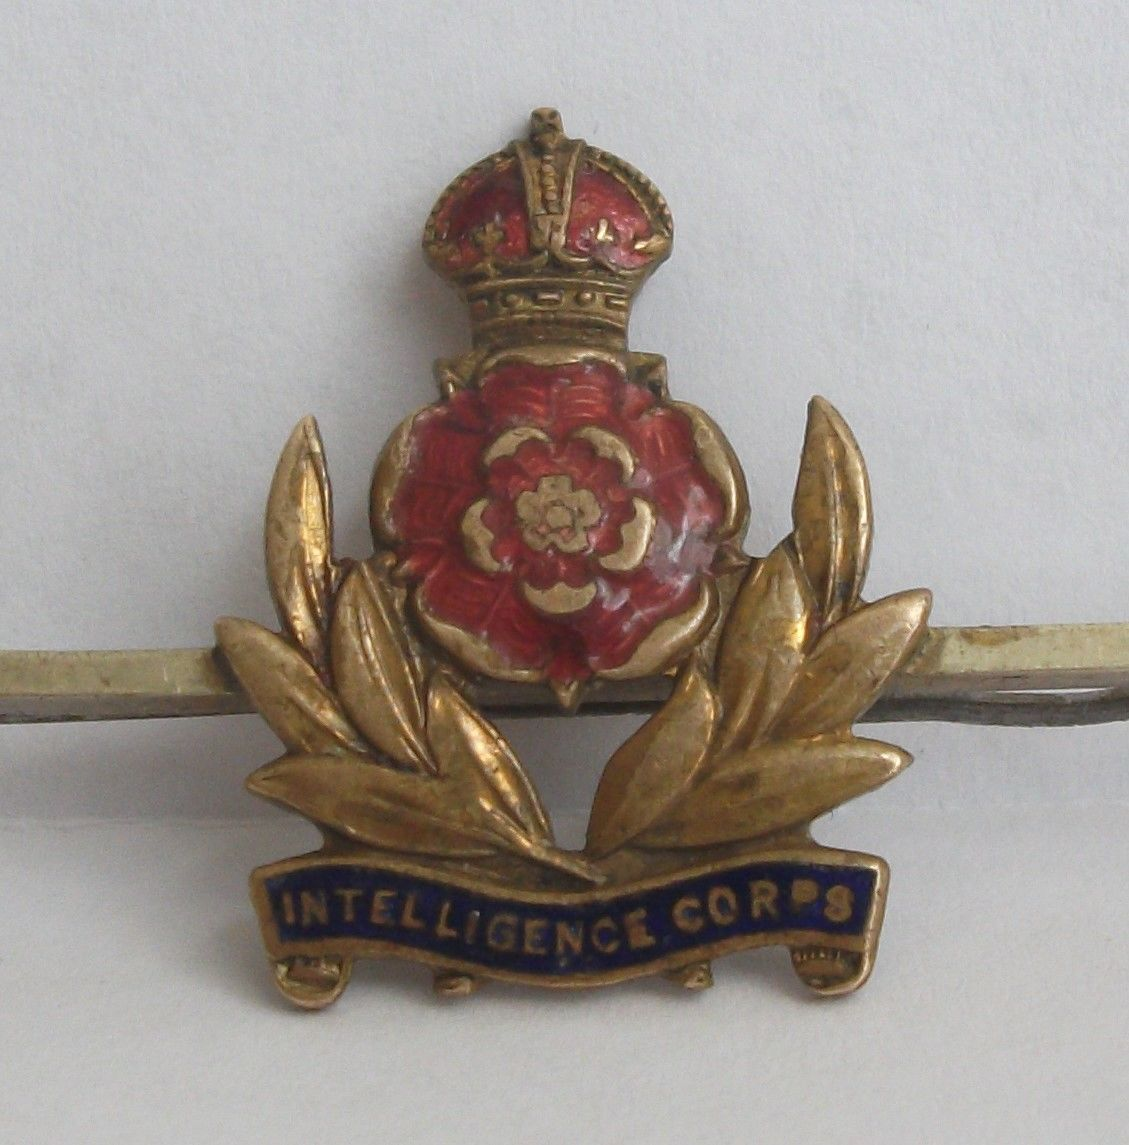 Details About WWII British Military Intelligence Corps